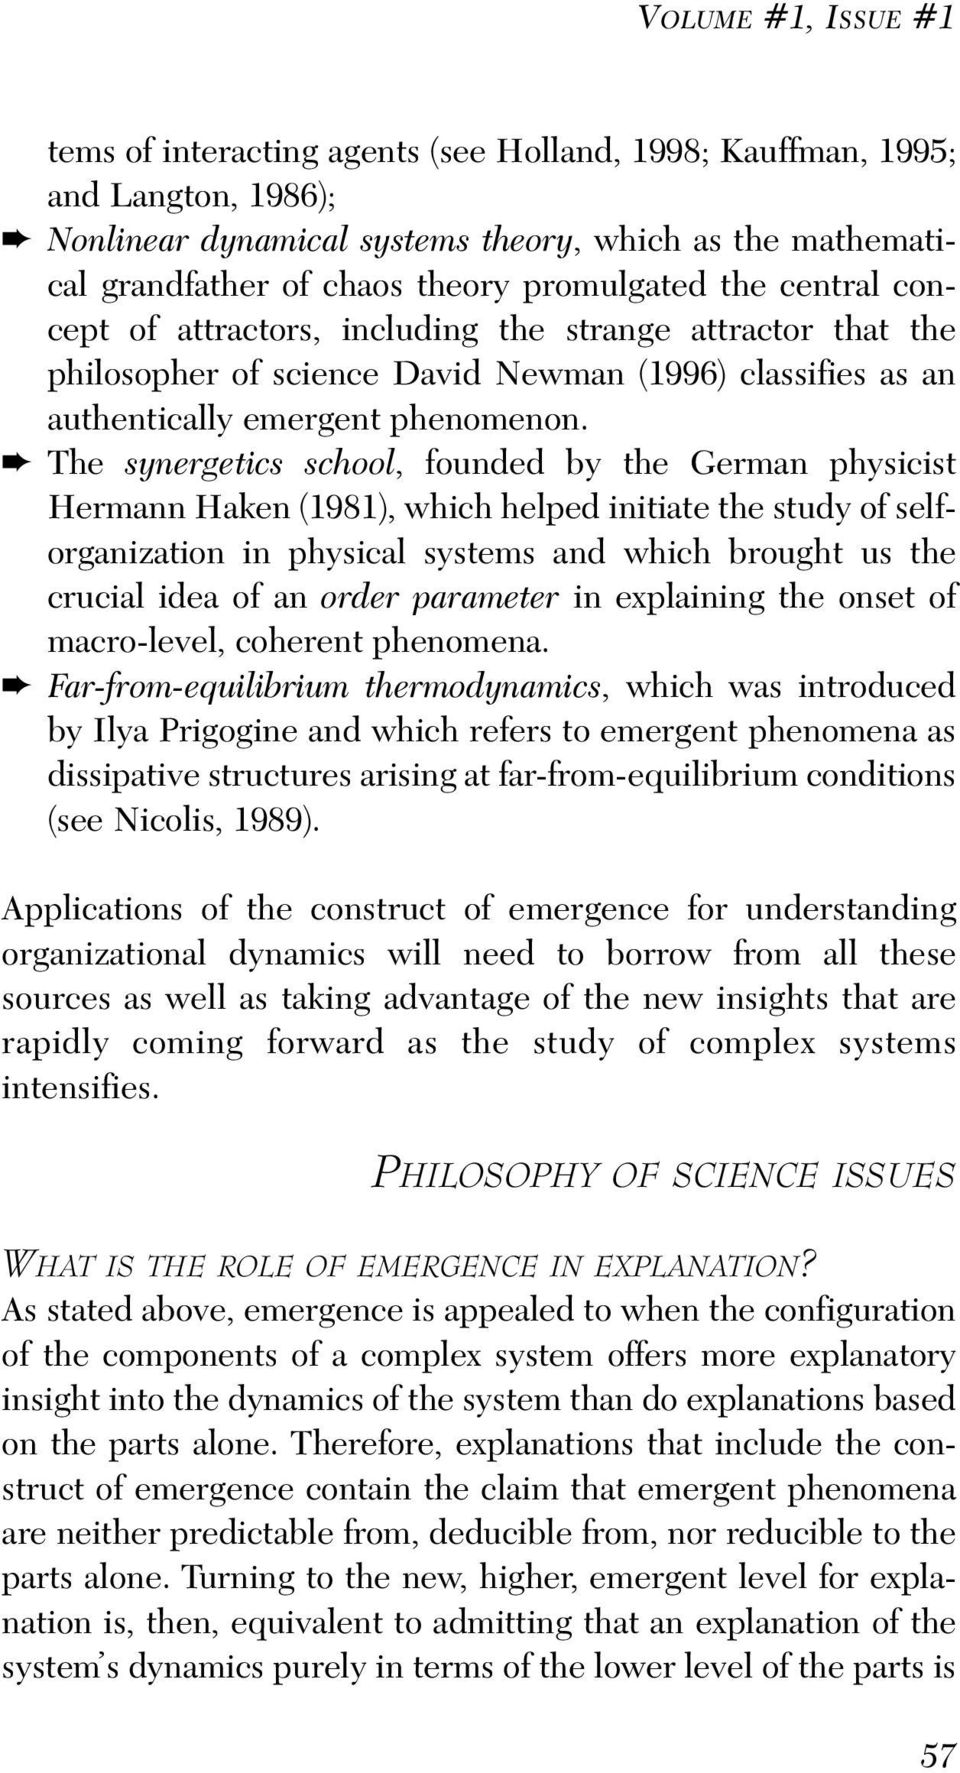 The synergetics school, founded by the German physicist Hermann Haken (1981), which helped initiate the study of selforganization in physical systems and which brought us the crucial idea of an order